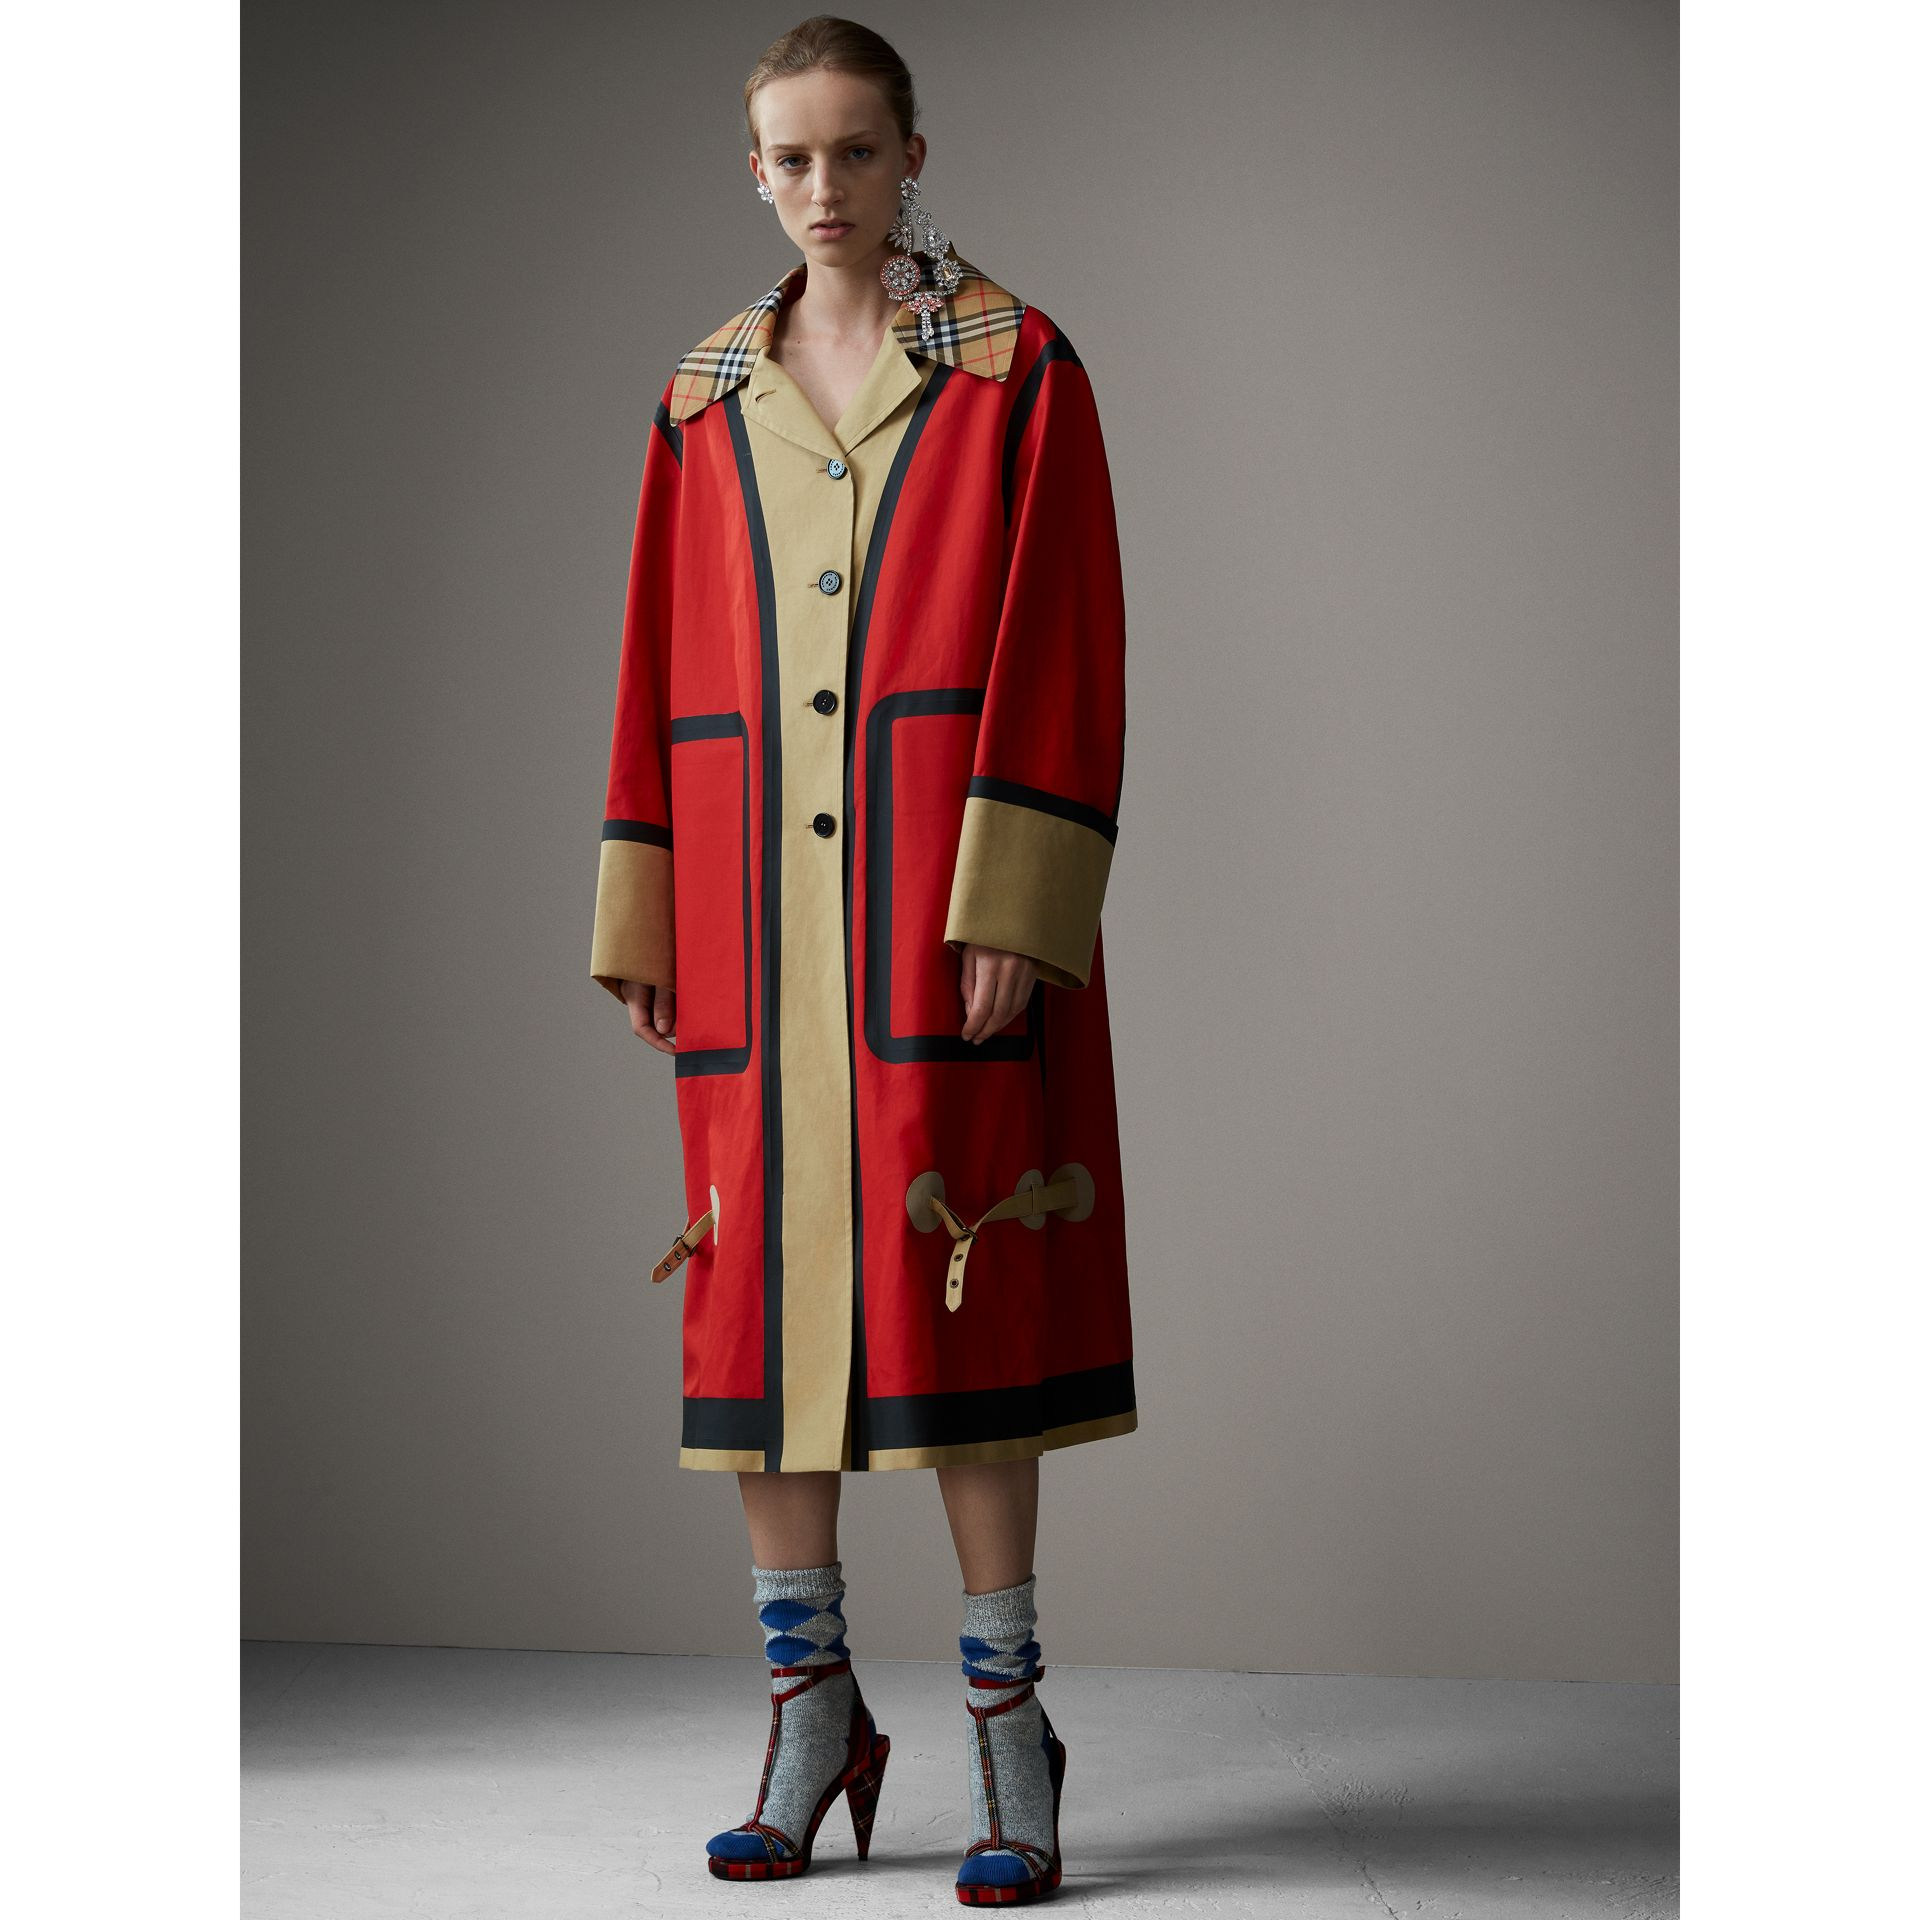 Bonded Cotton Oversized Seam-sealed Car Coat in Red/beige - Women | Burberry Hong Kong - gallery image 6